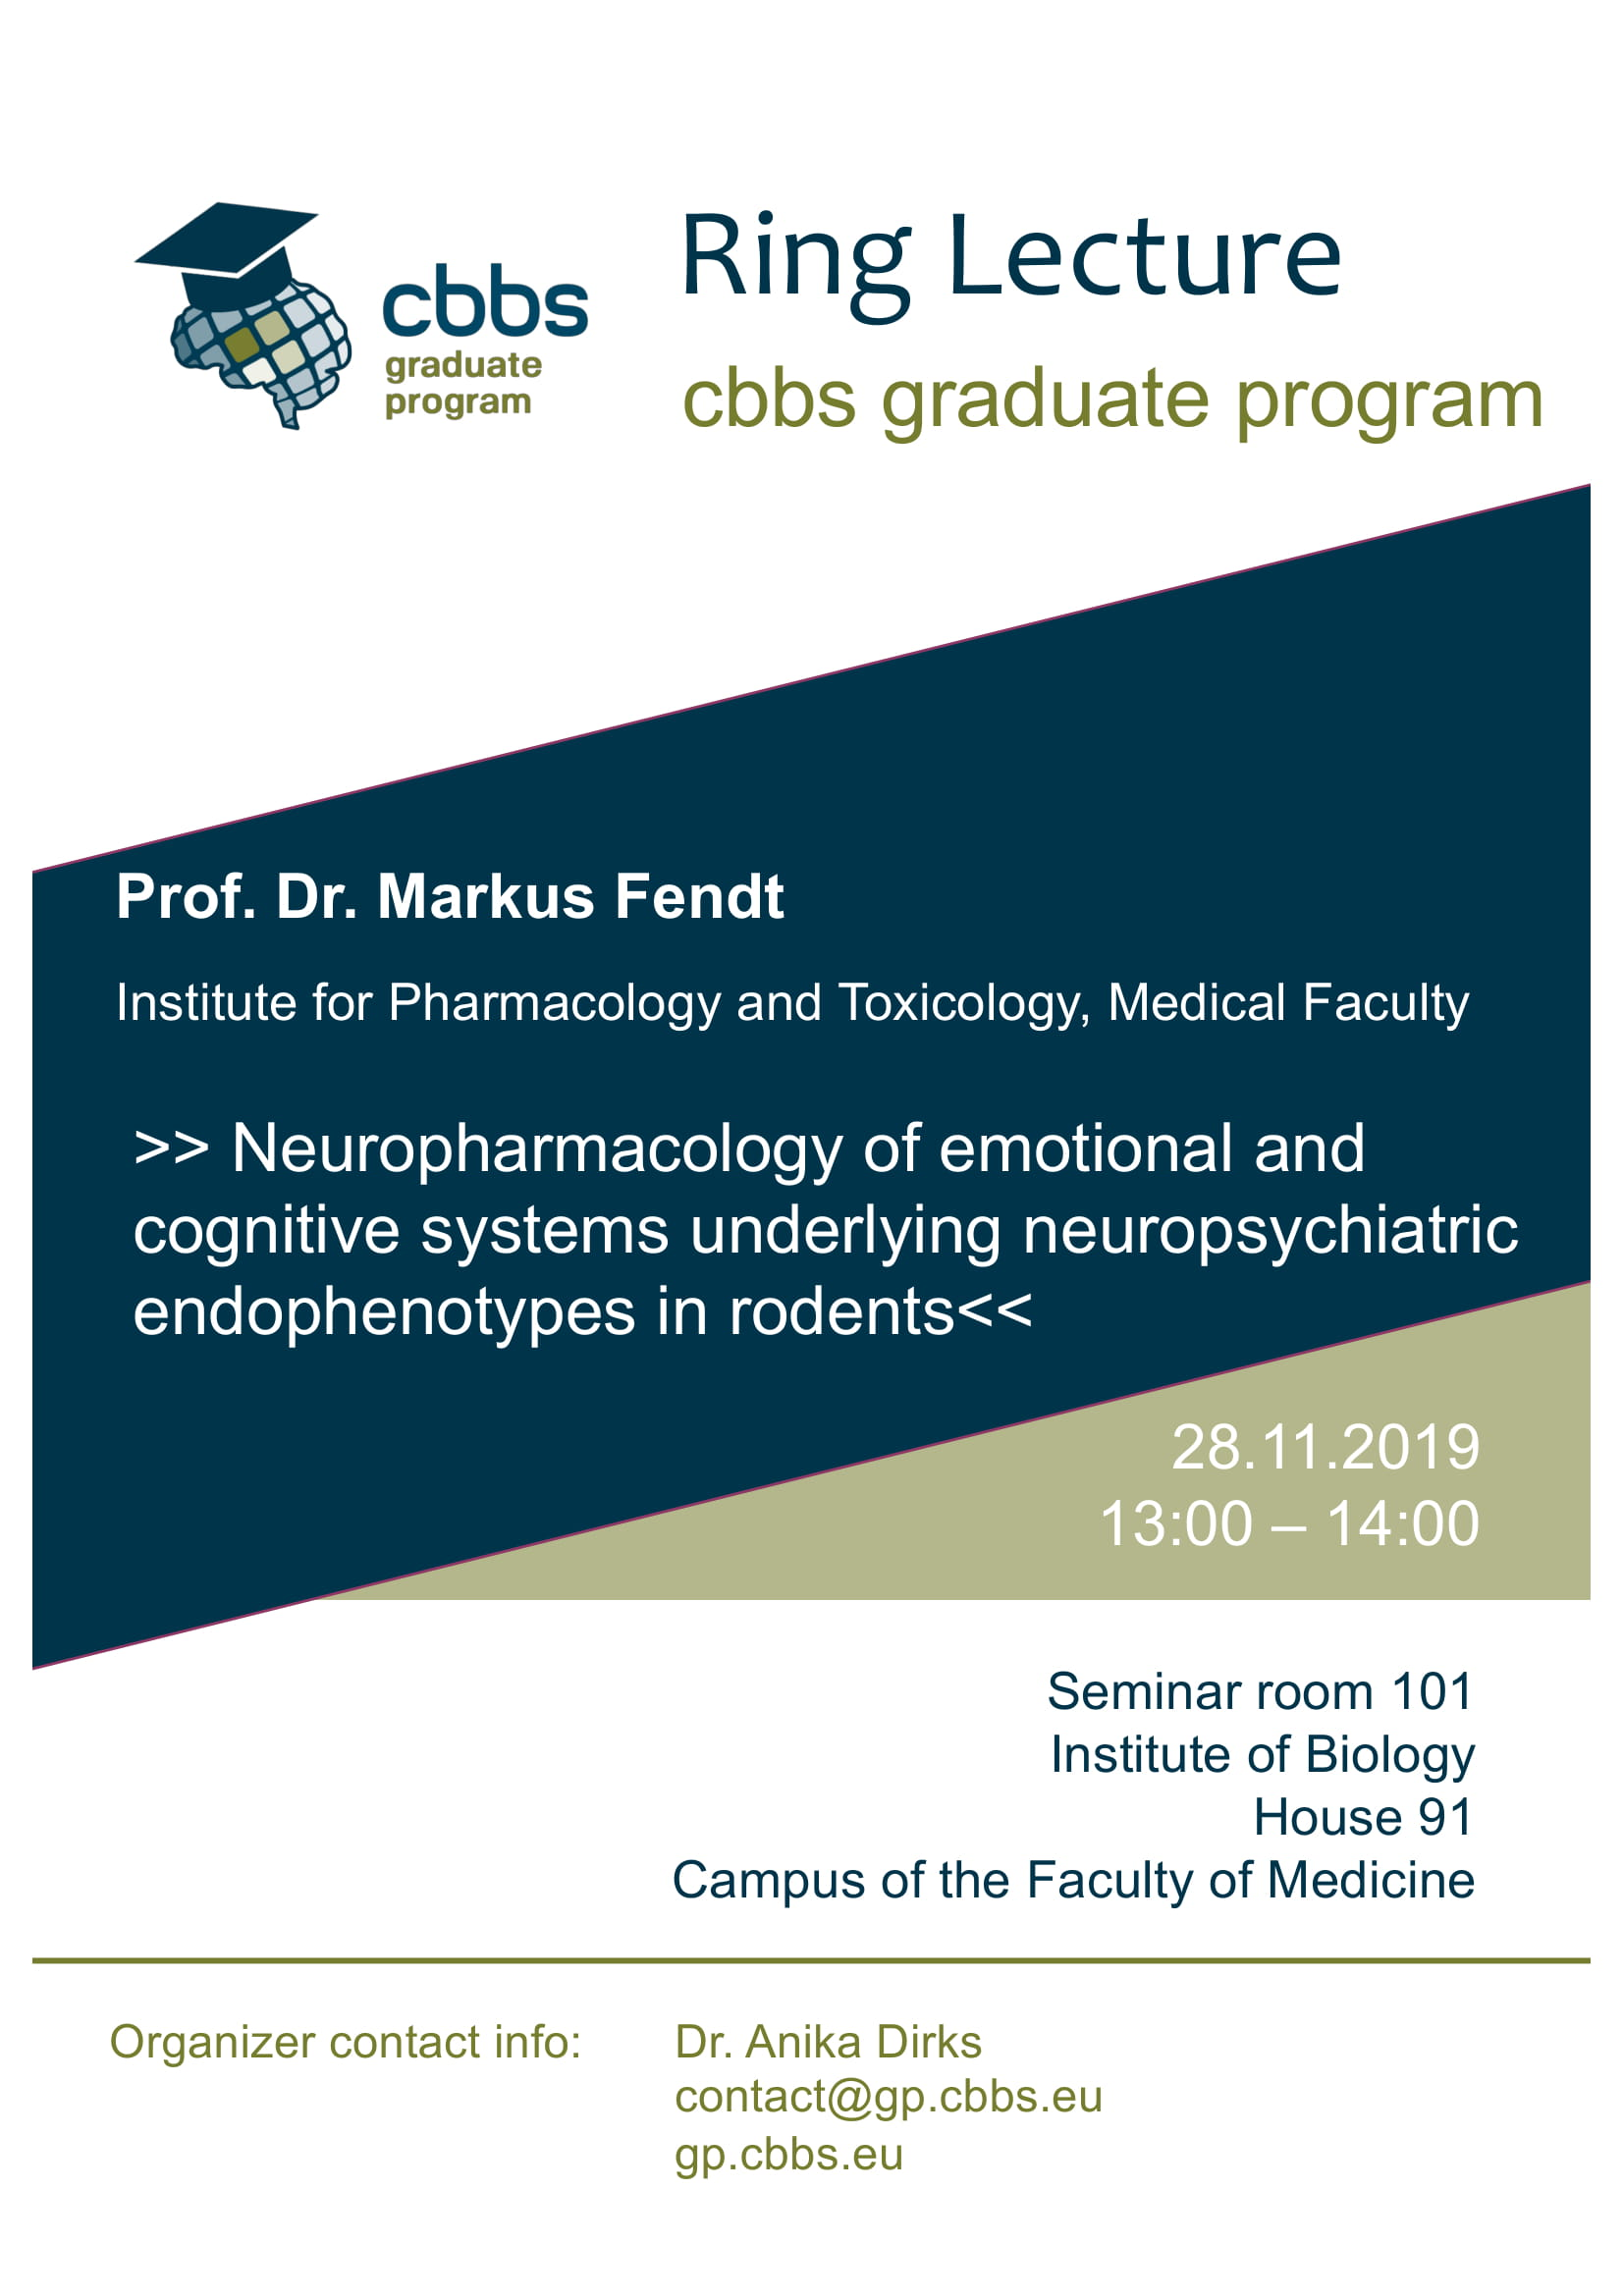 CBBS GP Ring Lecture: Neuropharmacology of emotional and cognitive systems underlying neuropsychiatric endophenotypes in rodents @ Institute of Biology, House 91, Seminarroom 101